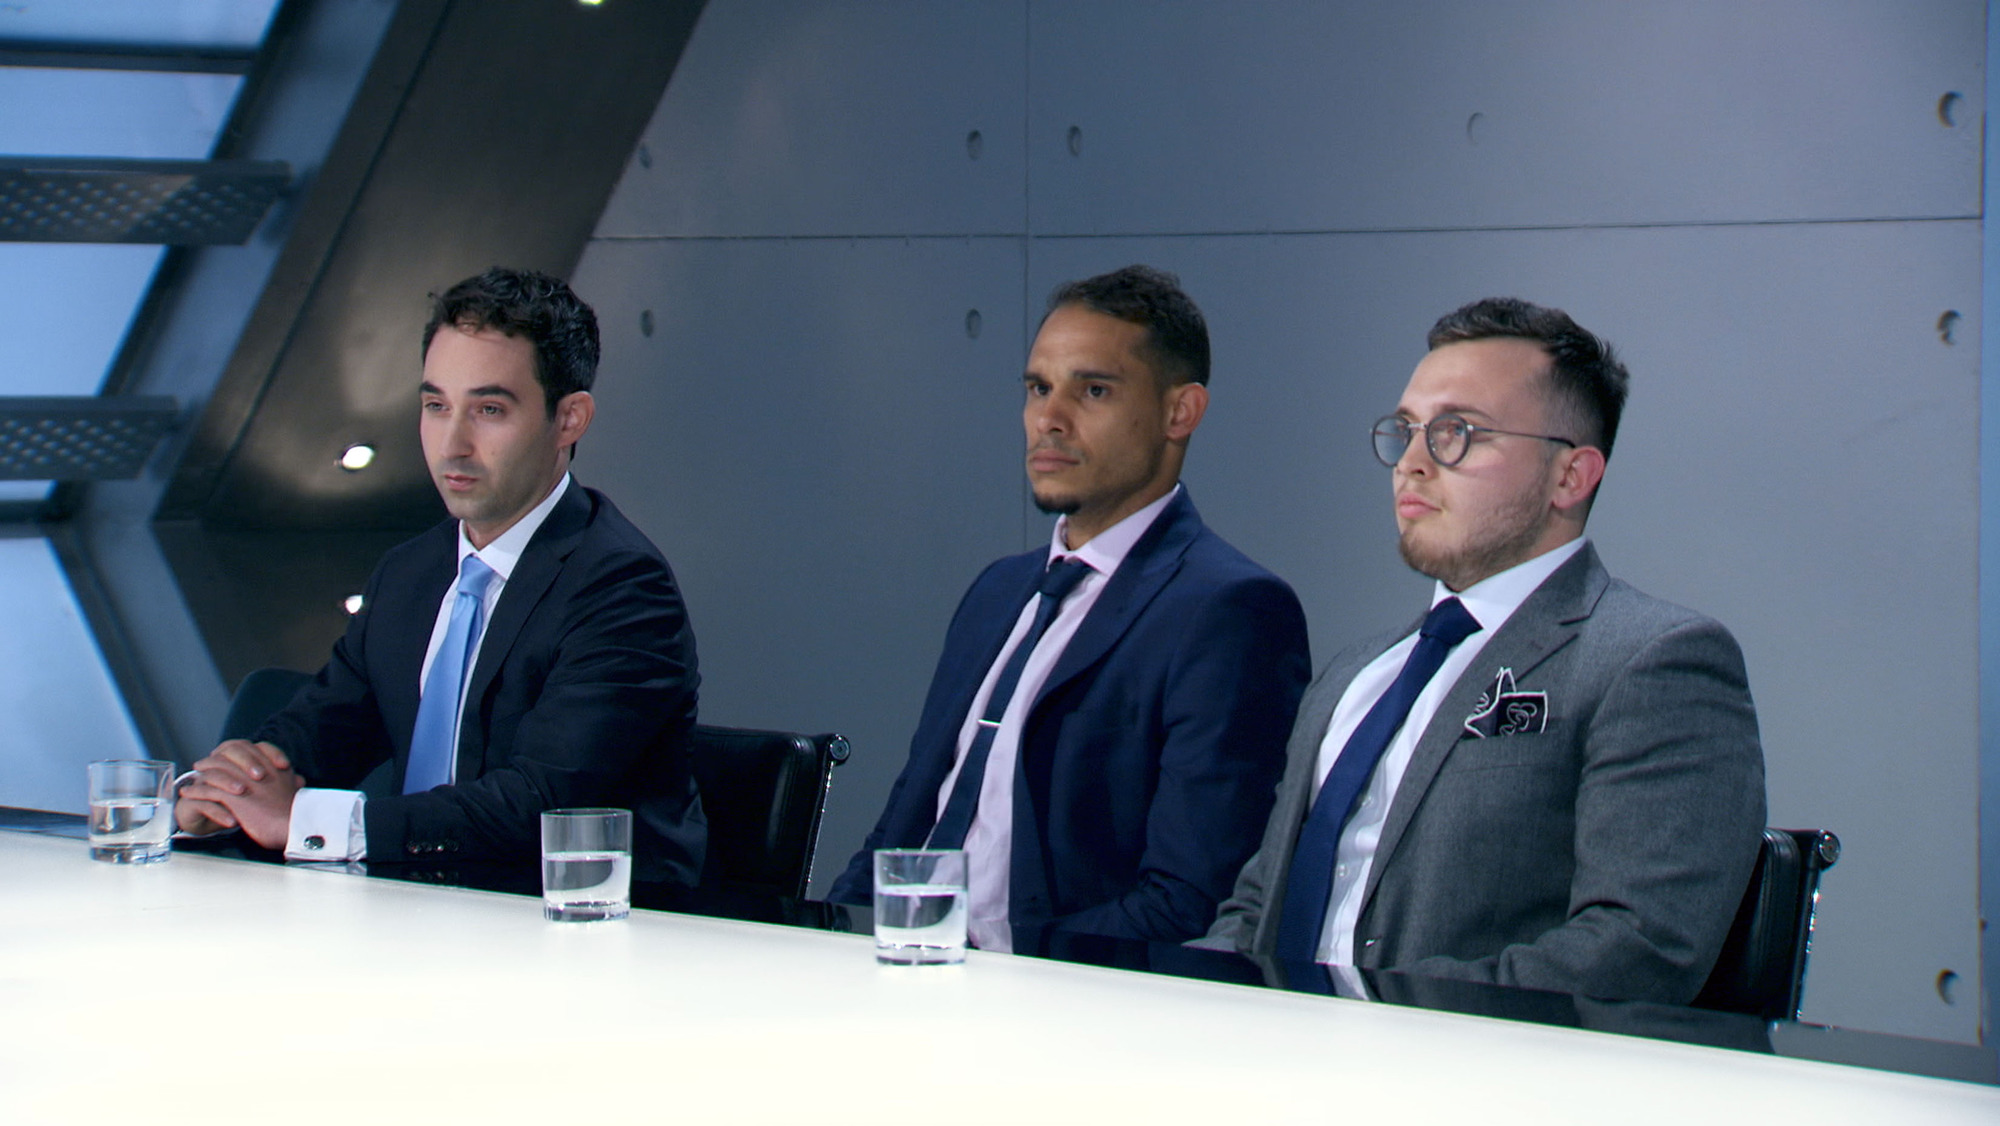 The Apprentice candidates in the boardroom